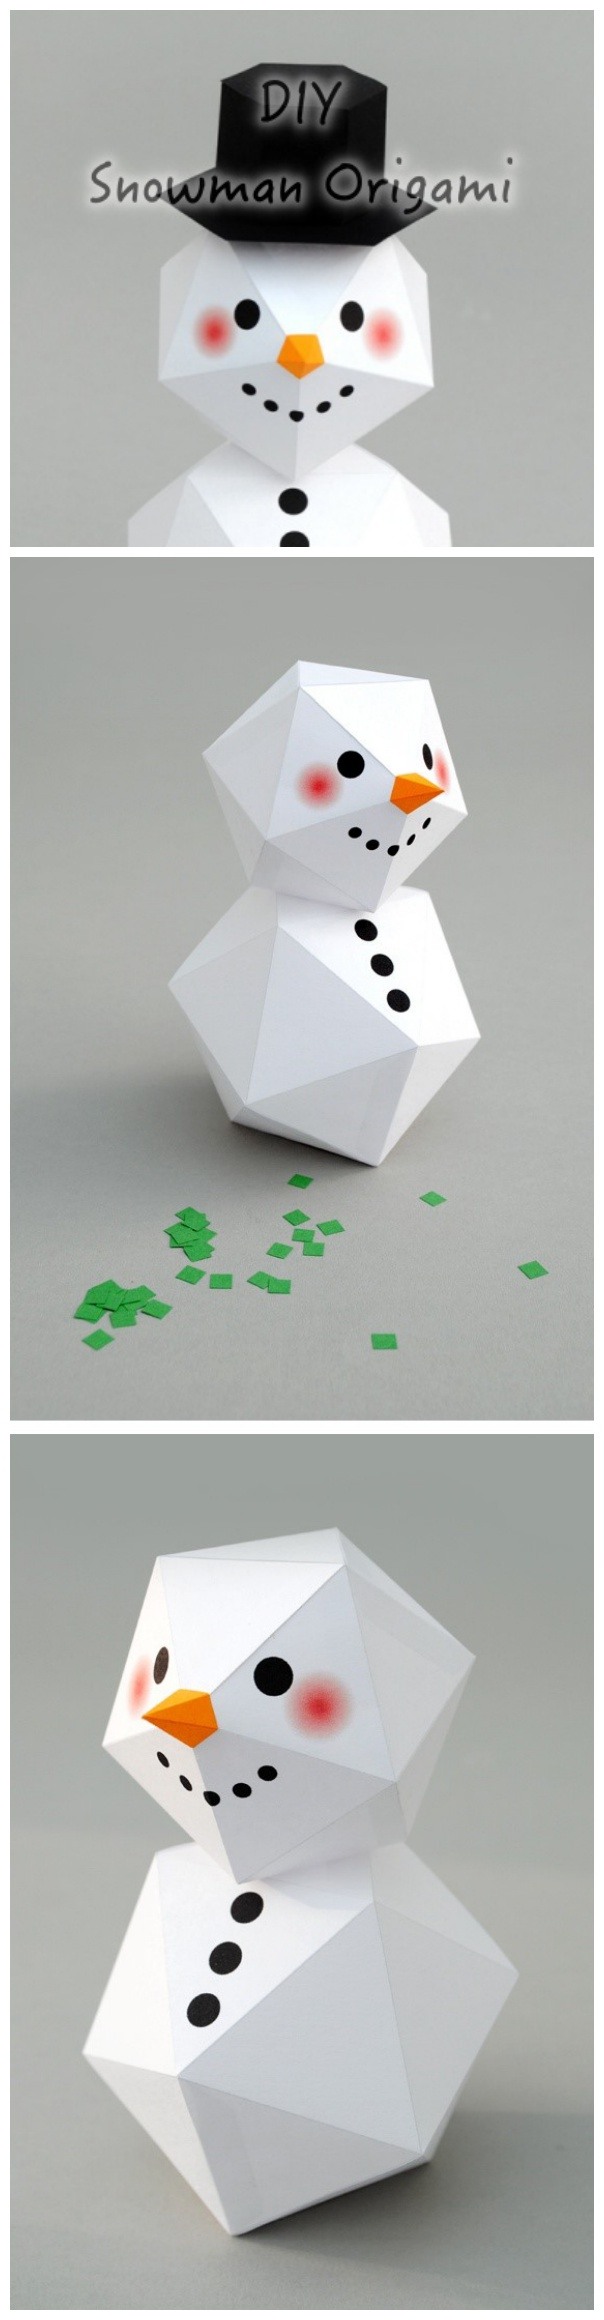 snowman-origami-craft-down